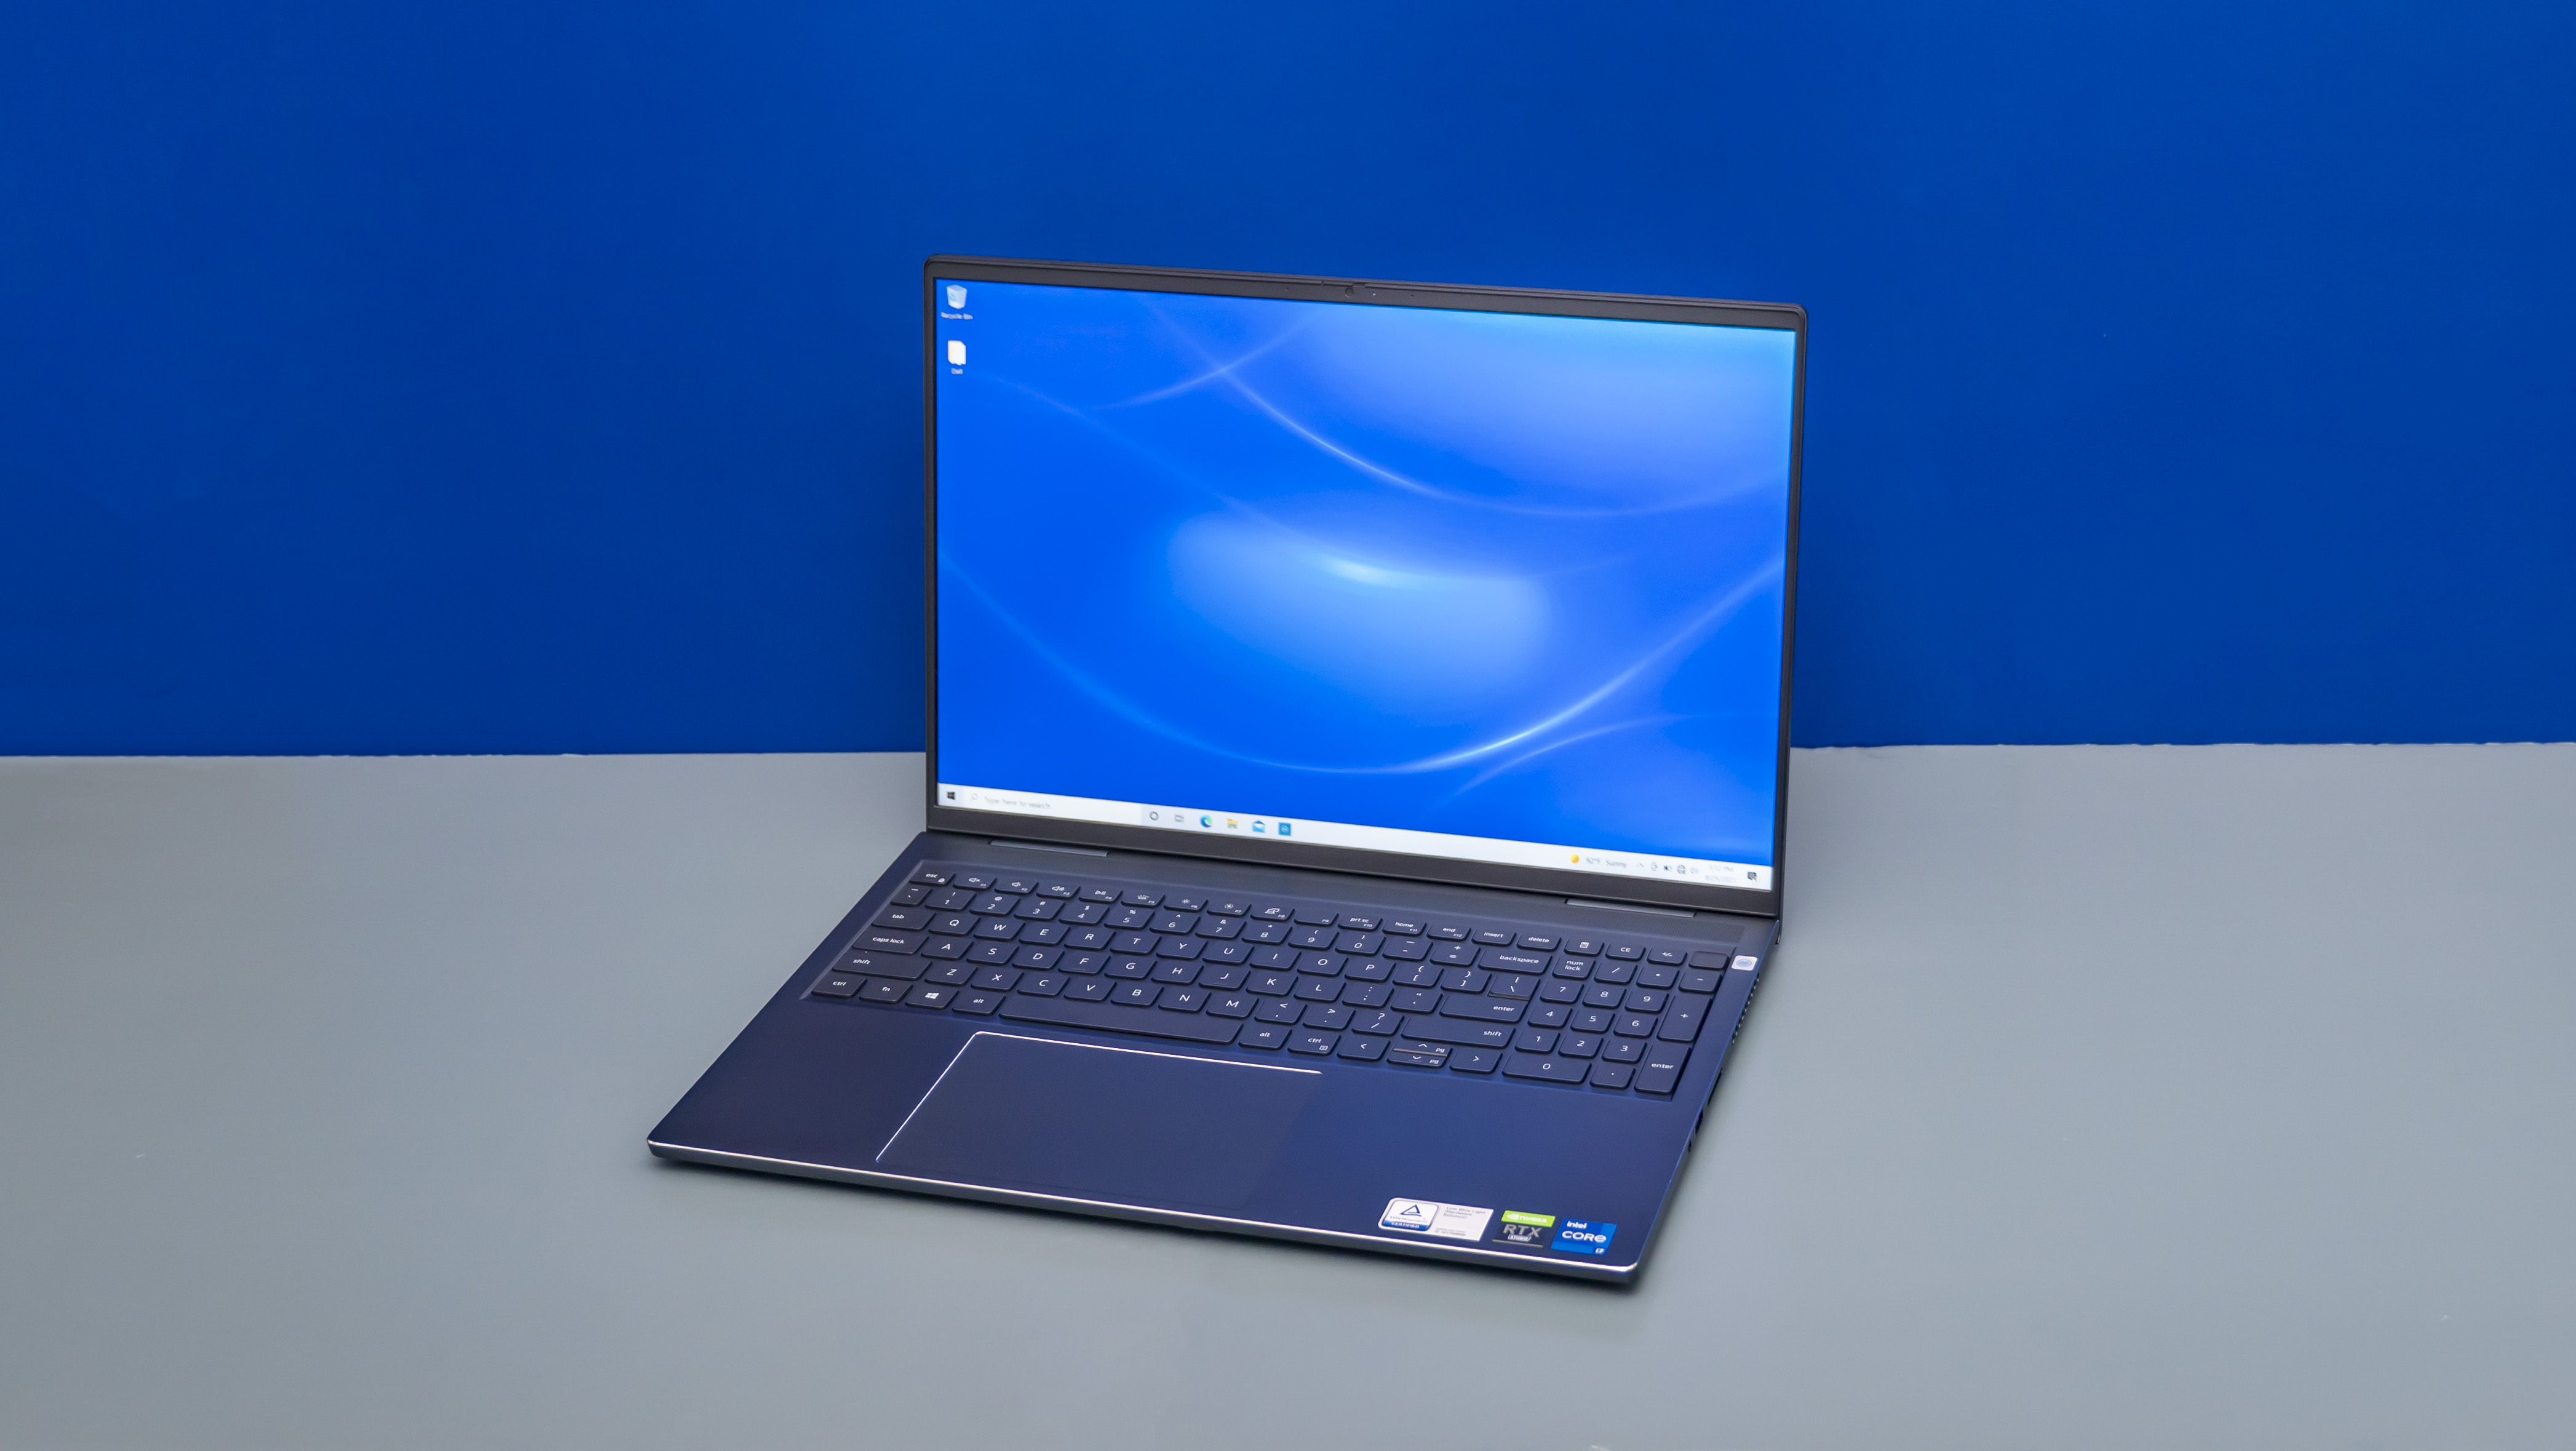 Dell Inspiron 16 Plus review: A MacBook Pro alternative for much less - CNET